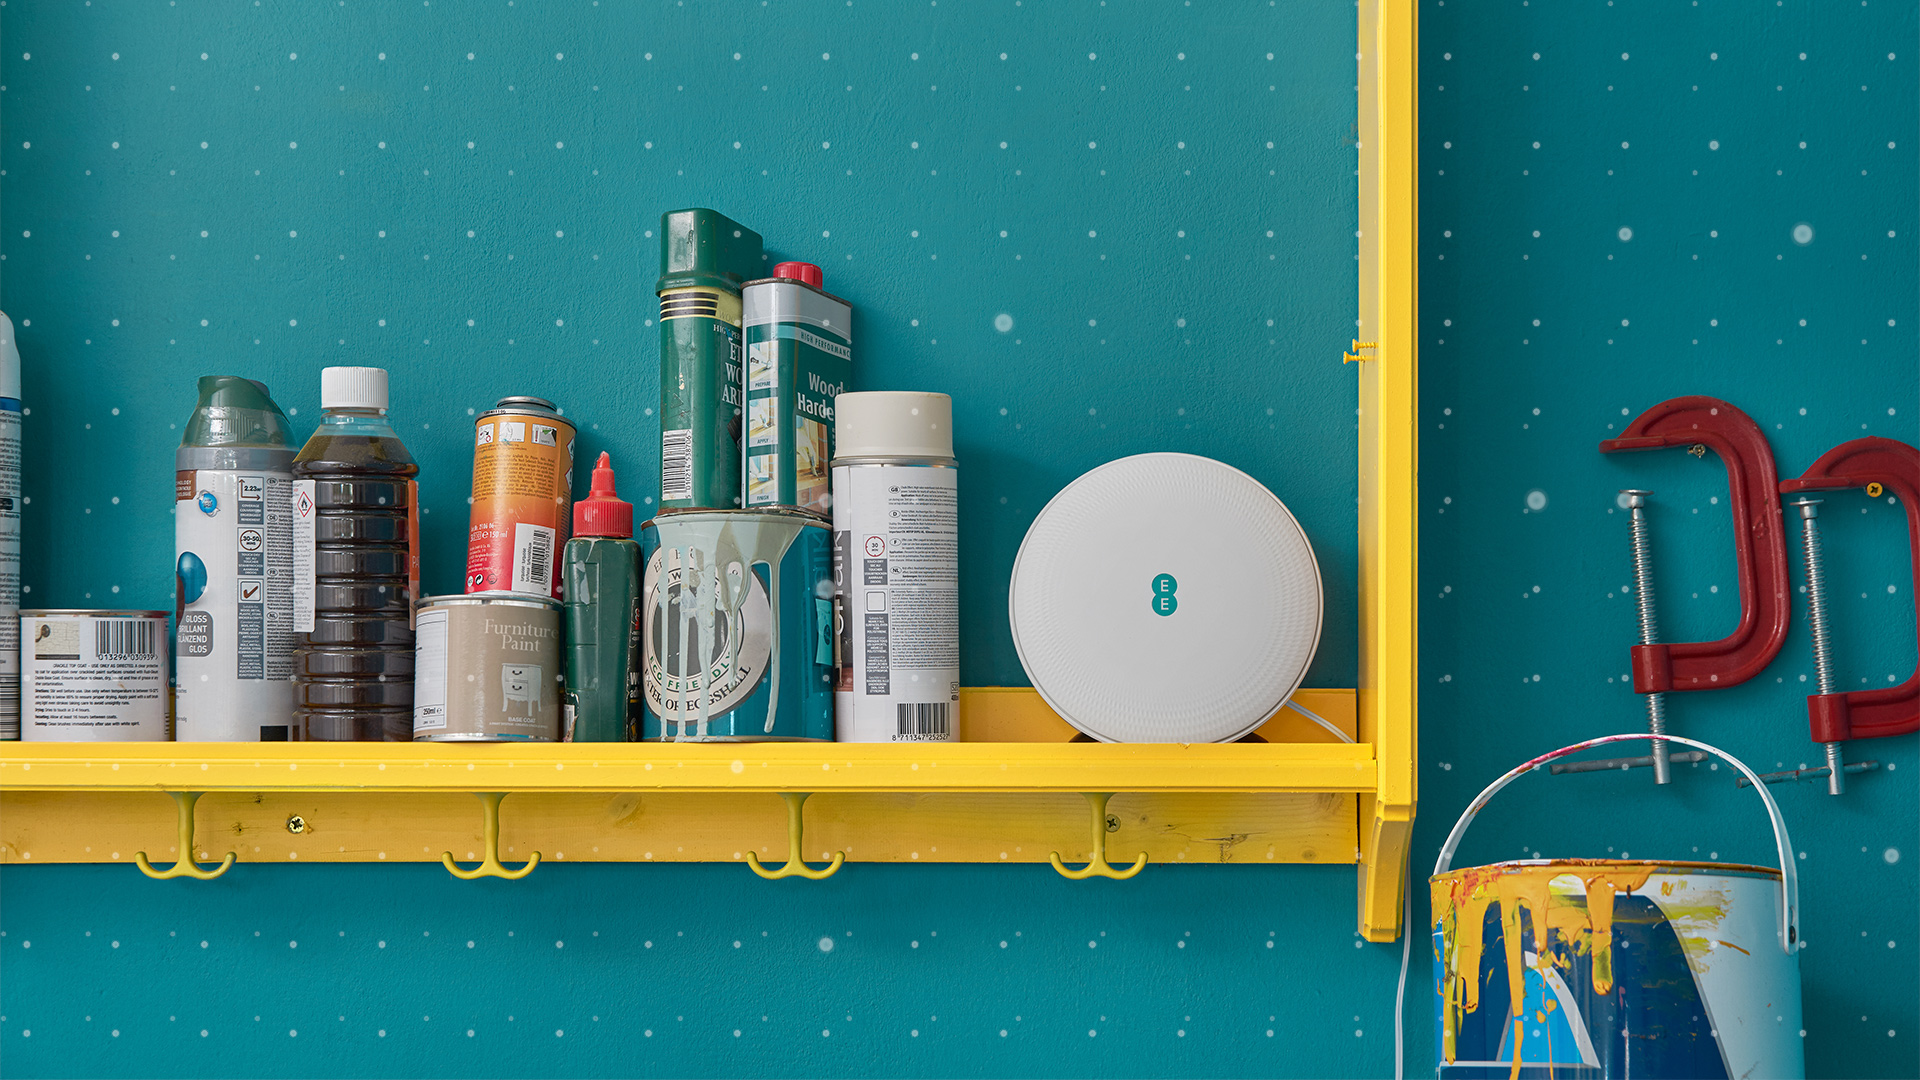 EE Smart WiFi booster disc postioned on shelf next to paints and home decorating products